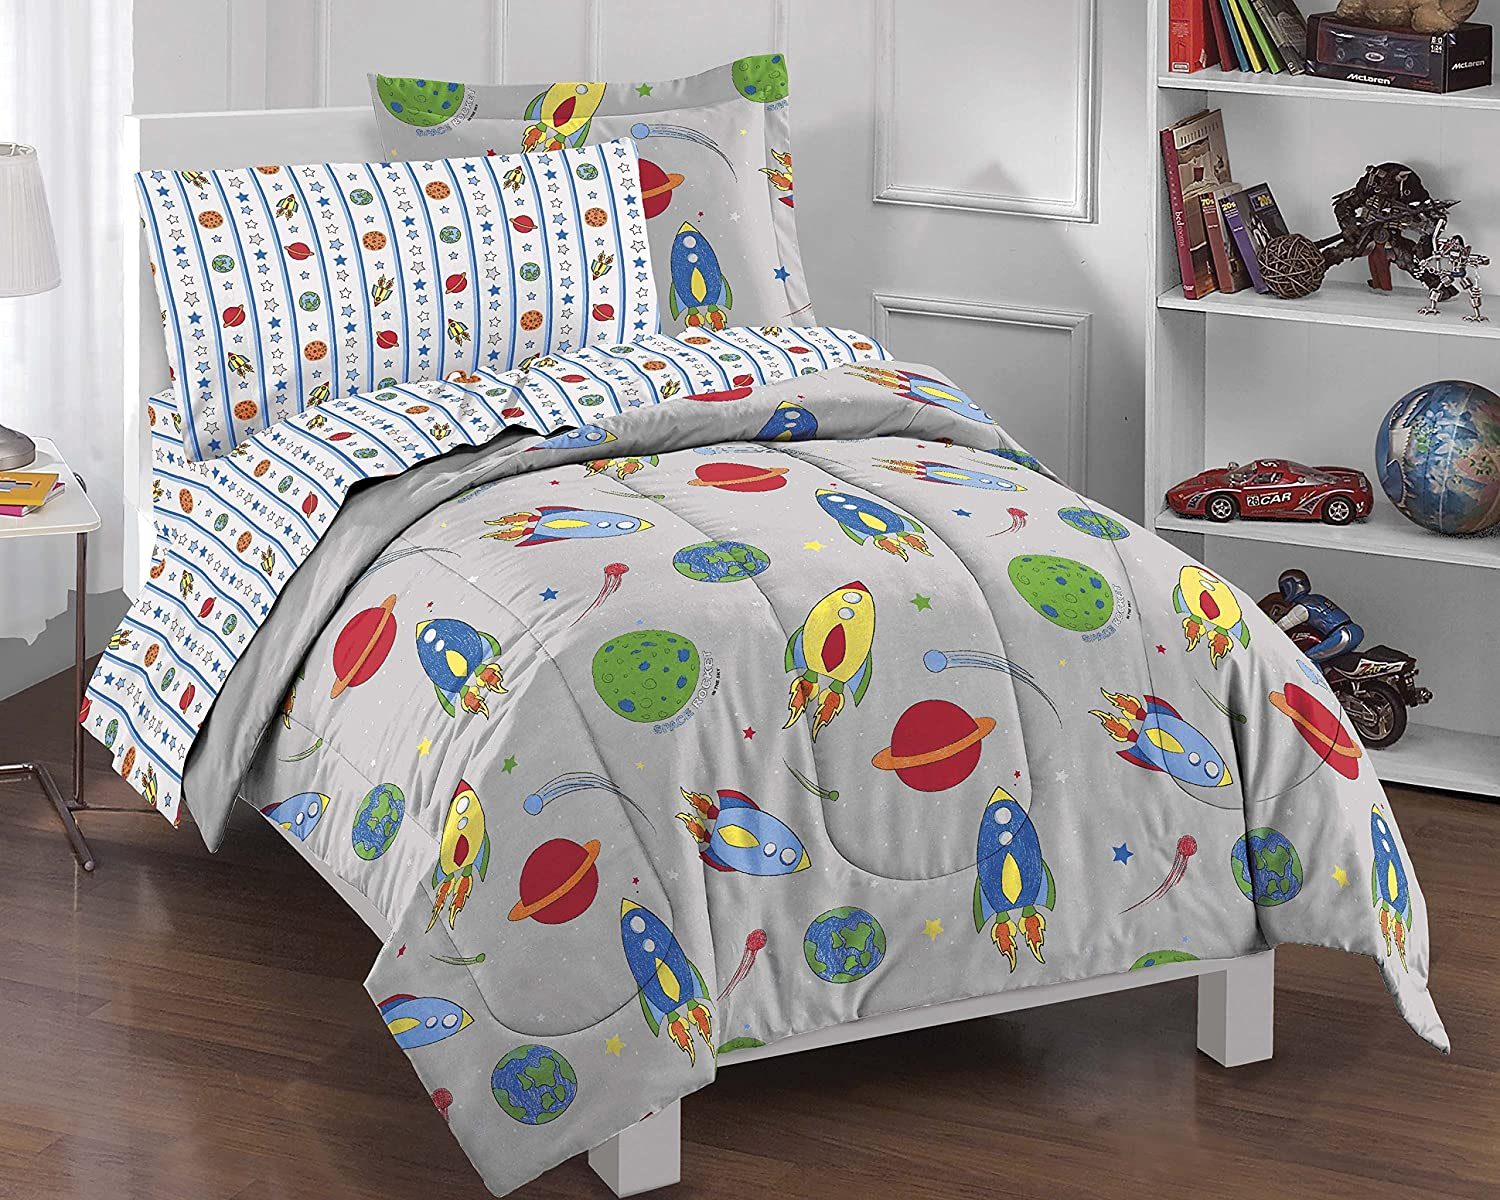 Dream Factory Space Rocket Ultra Soft Microfiber Comforter Set, Multi-Colored